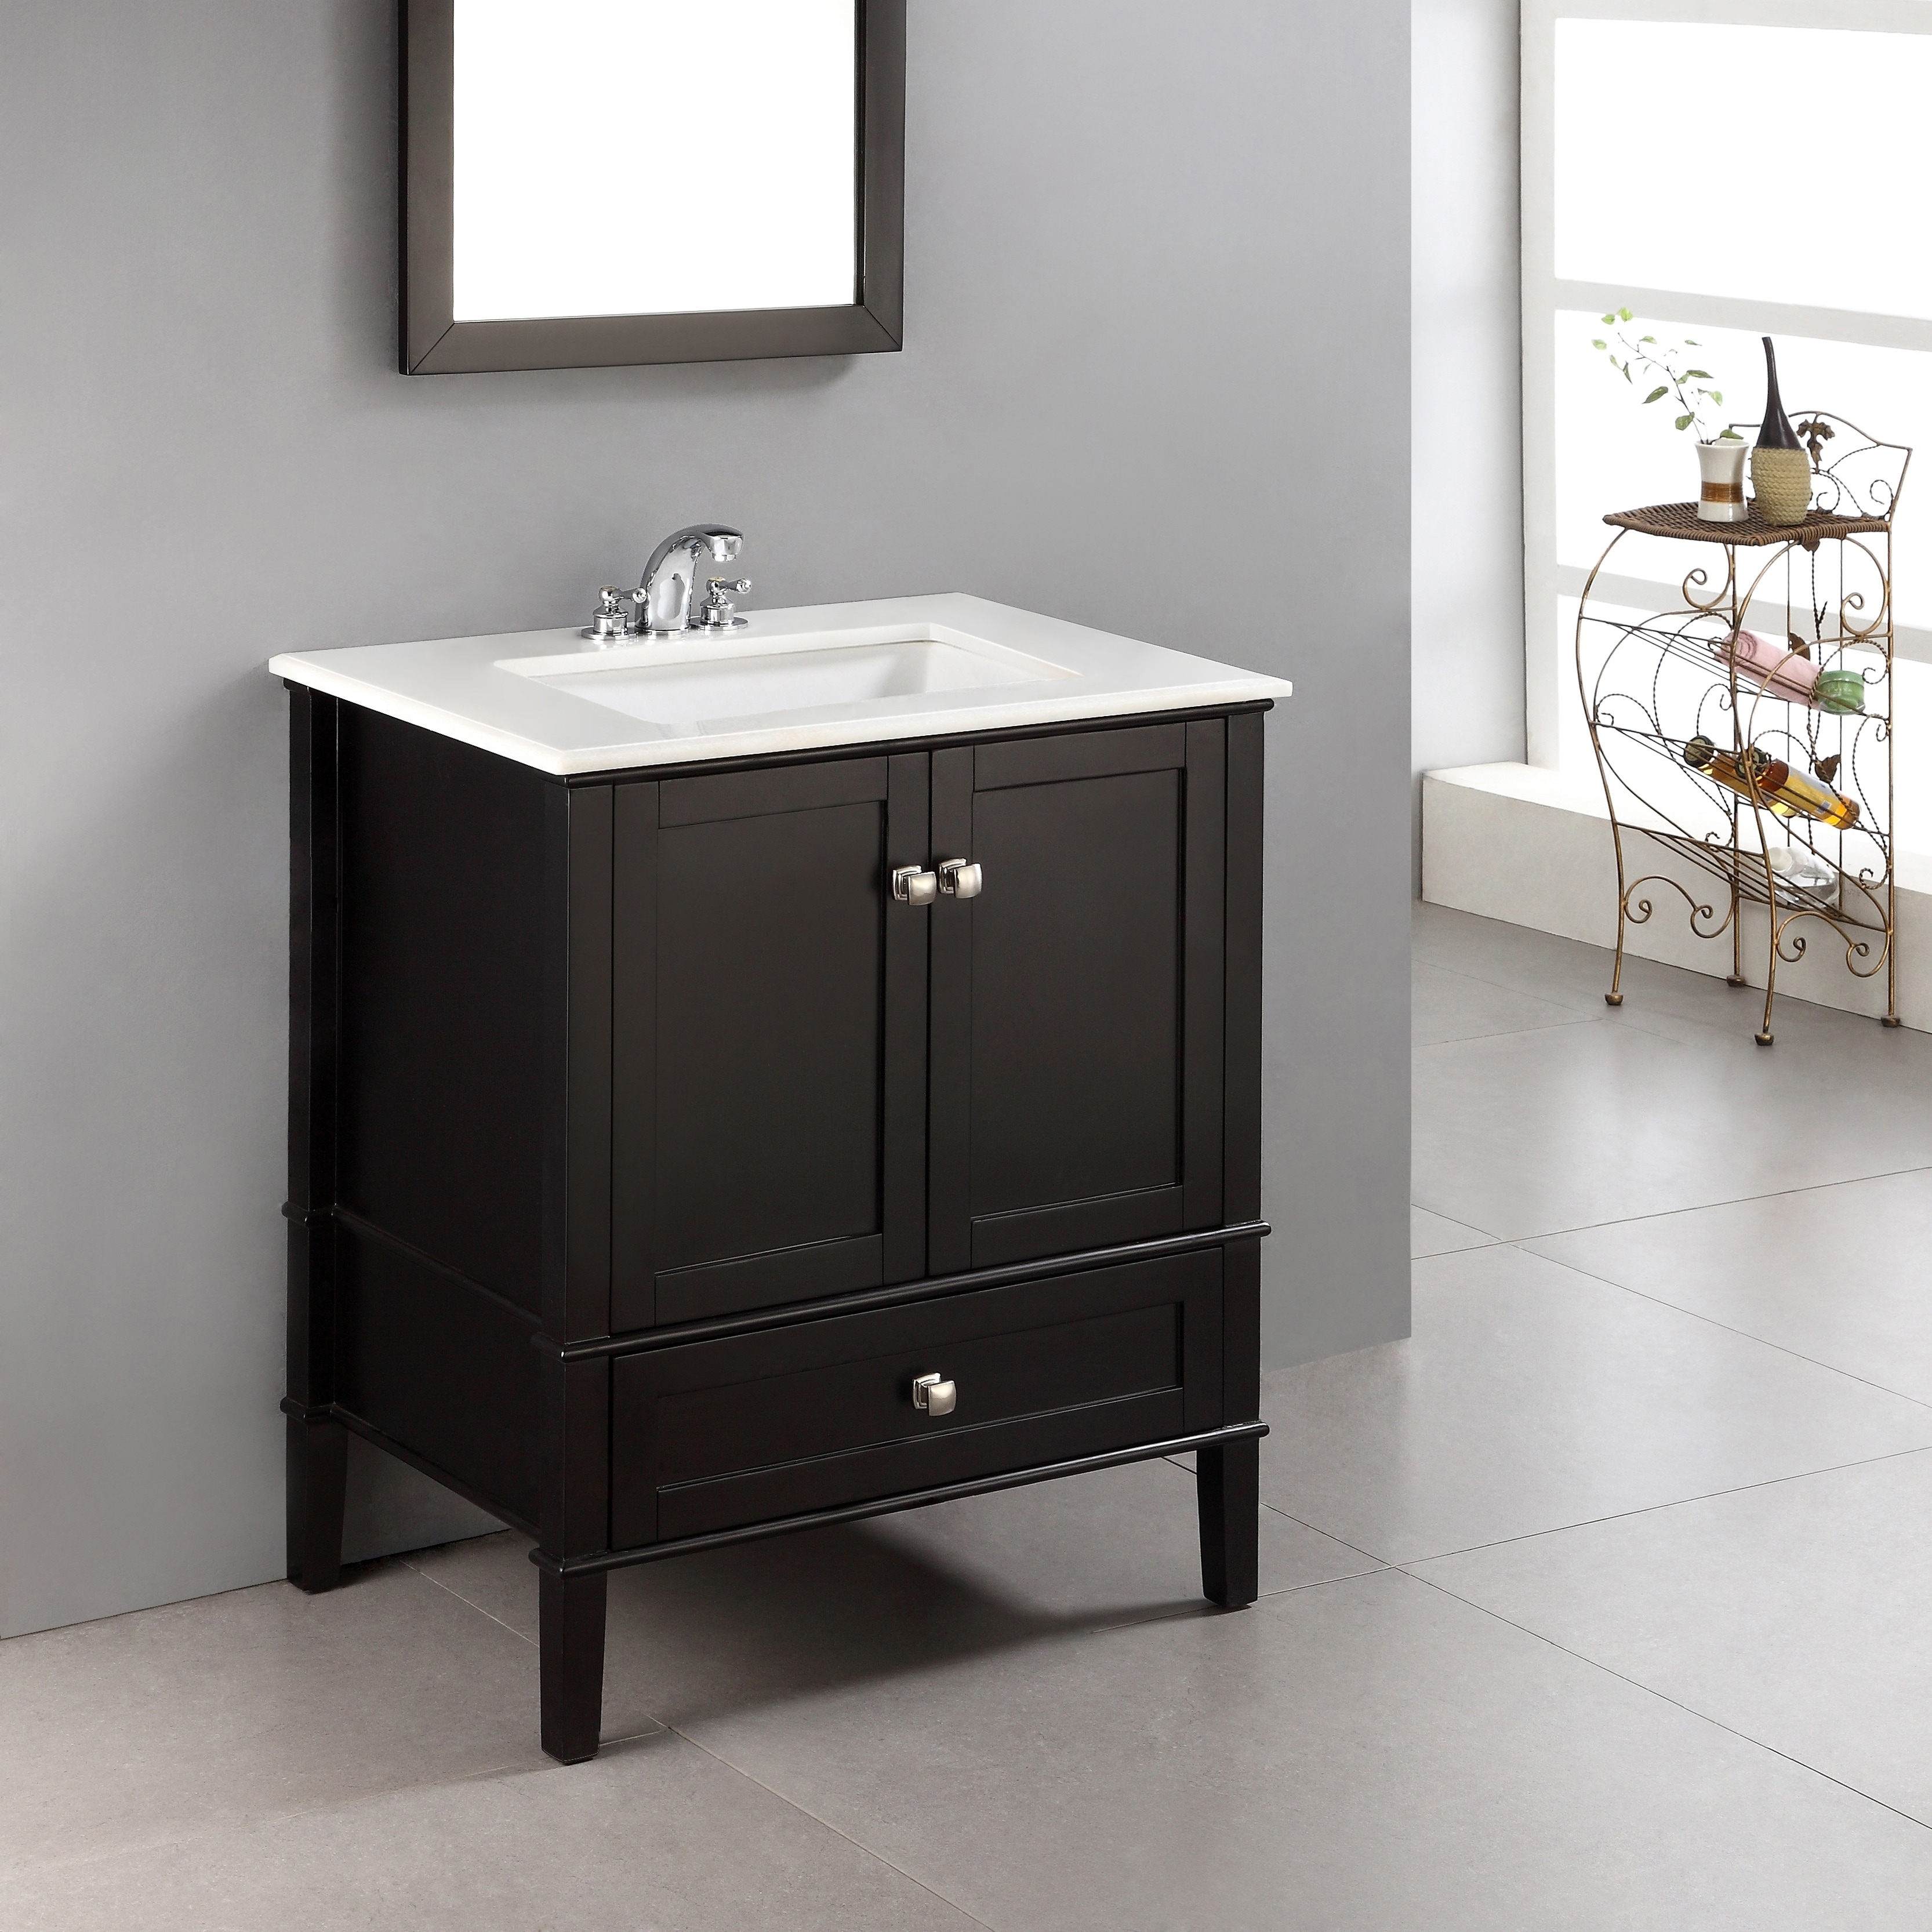 Shop Wyndenhall Windham 30 Inch Contemporary Bath Vanity In Black With White Engineered Quartz Marble Top Overstock 6771712